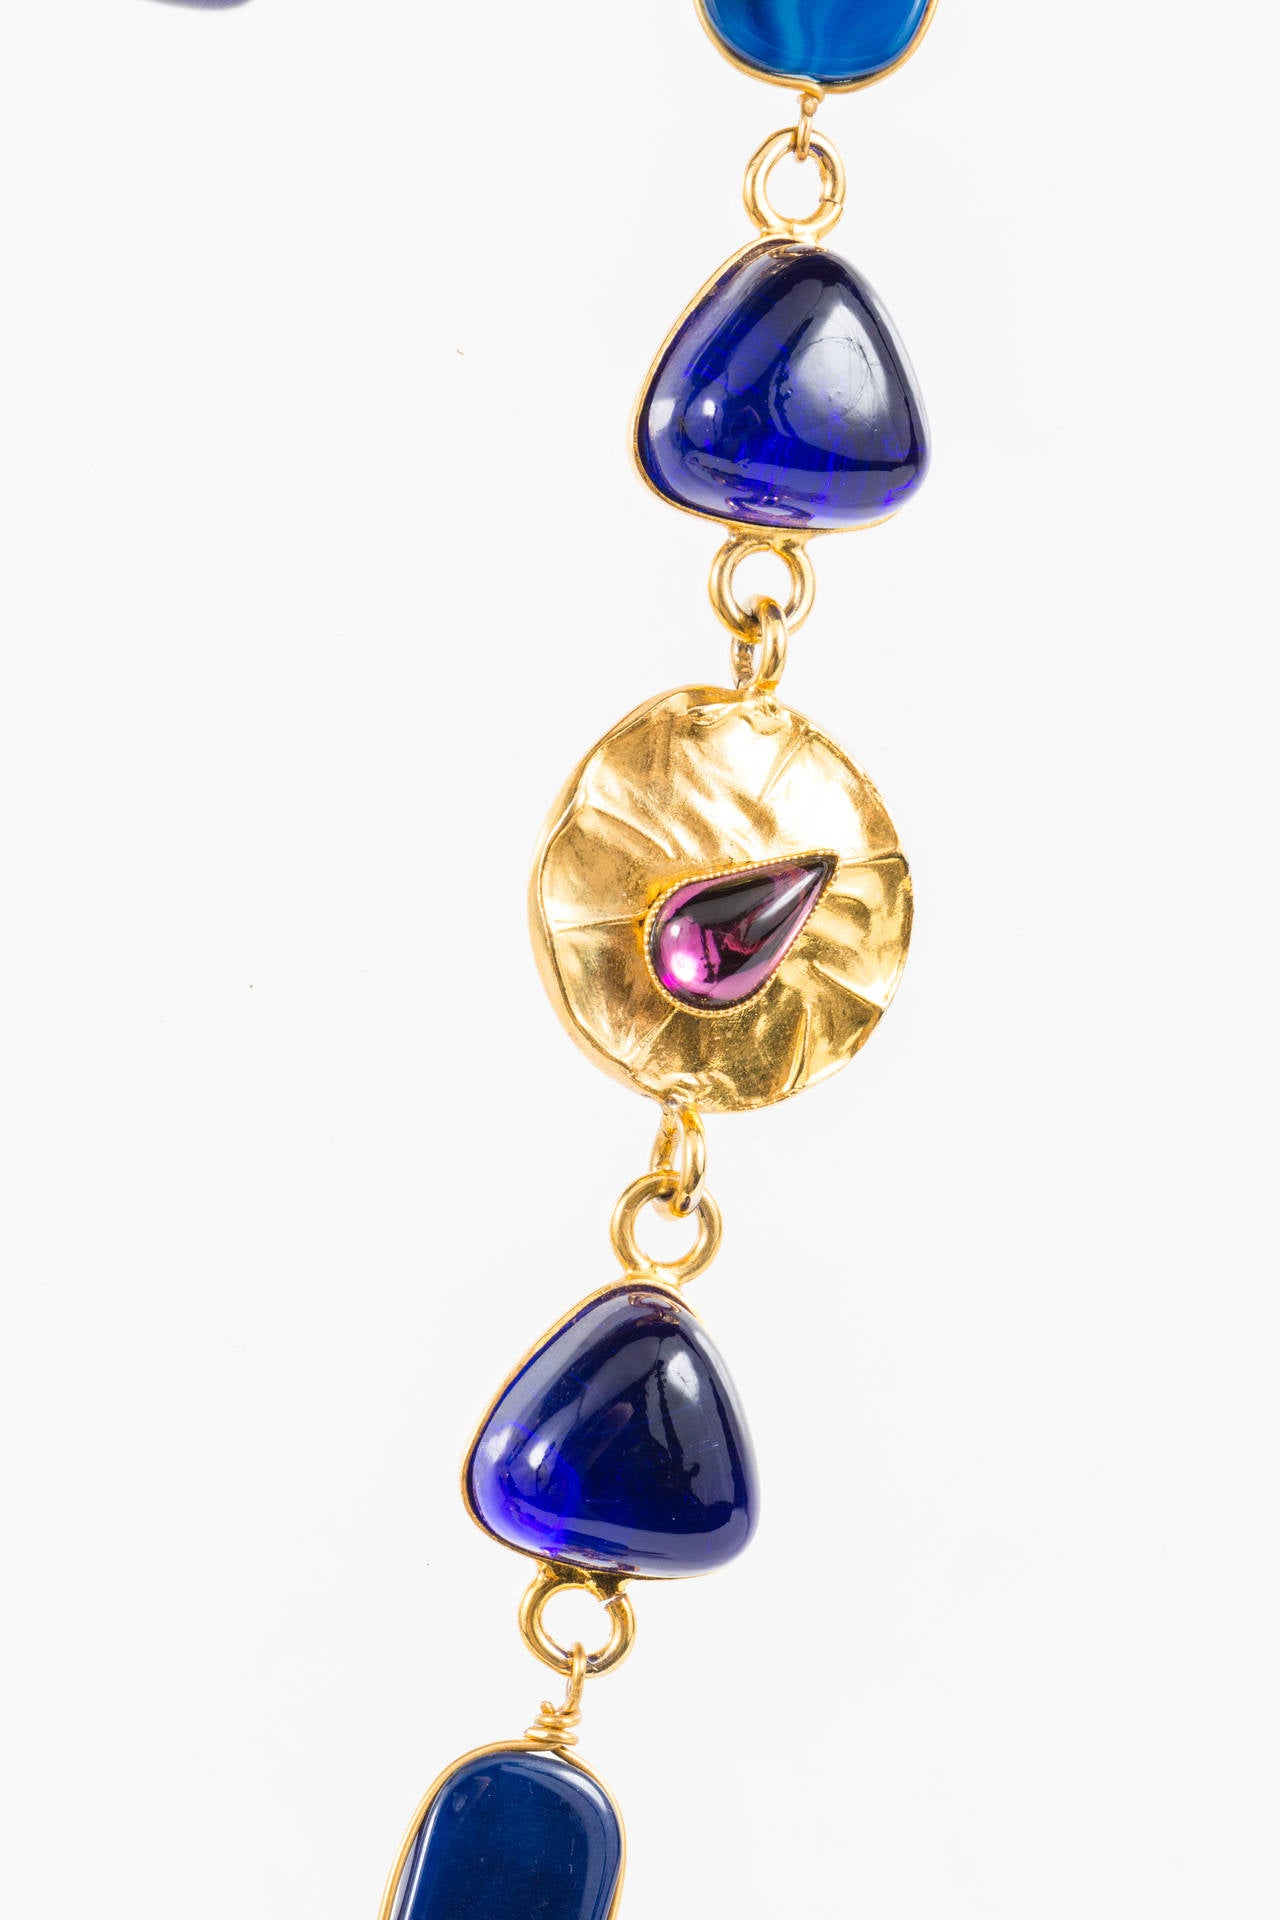 Triangular Mixed Materials Yves Saint Laurent Necklace For Sale 2